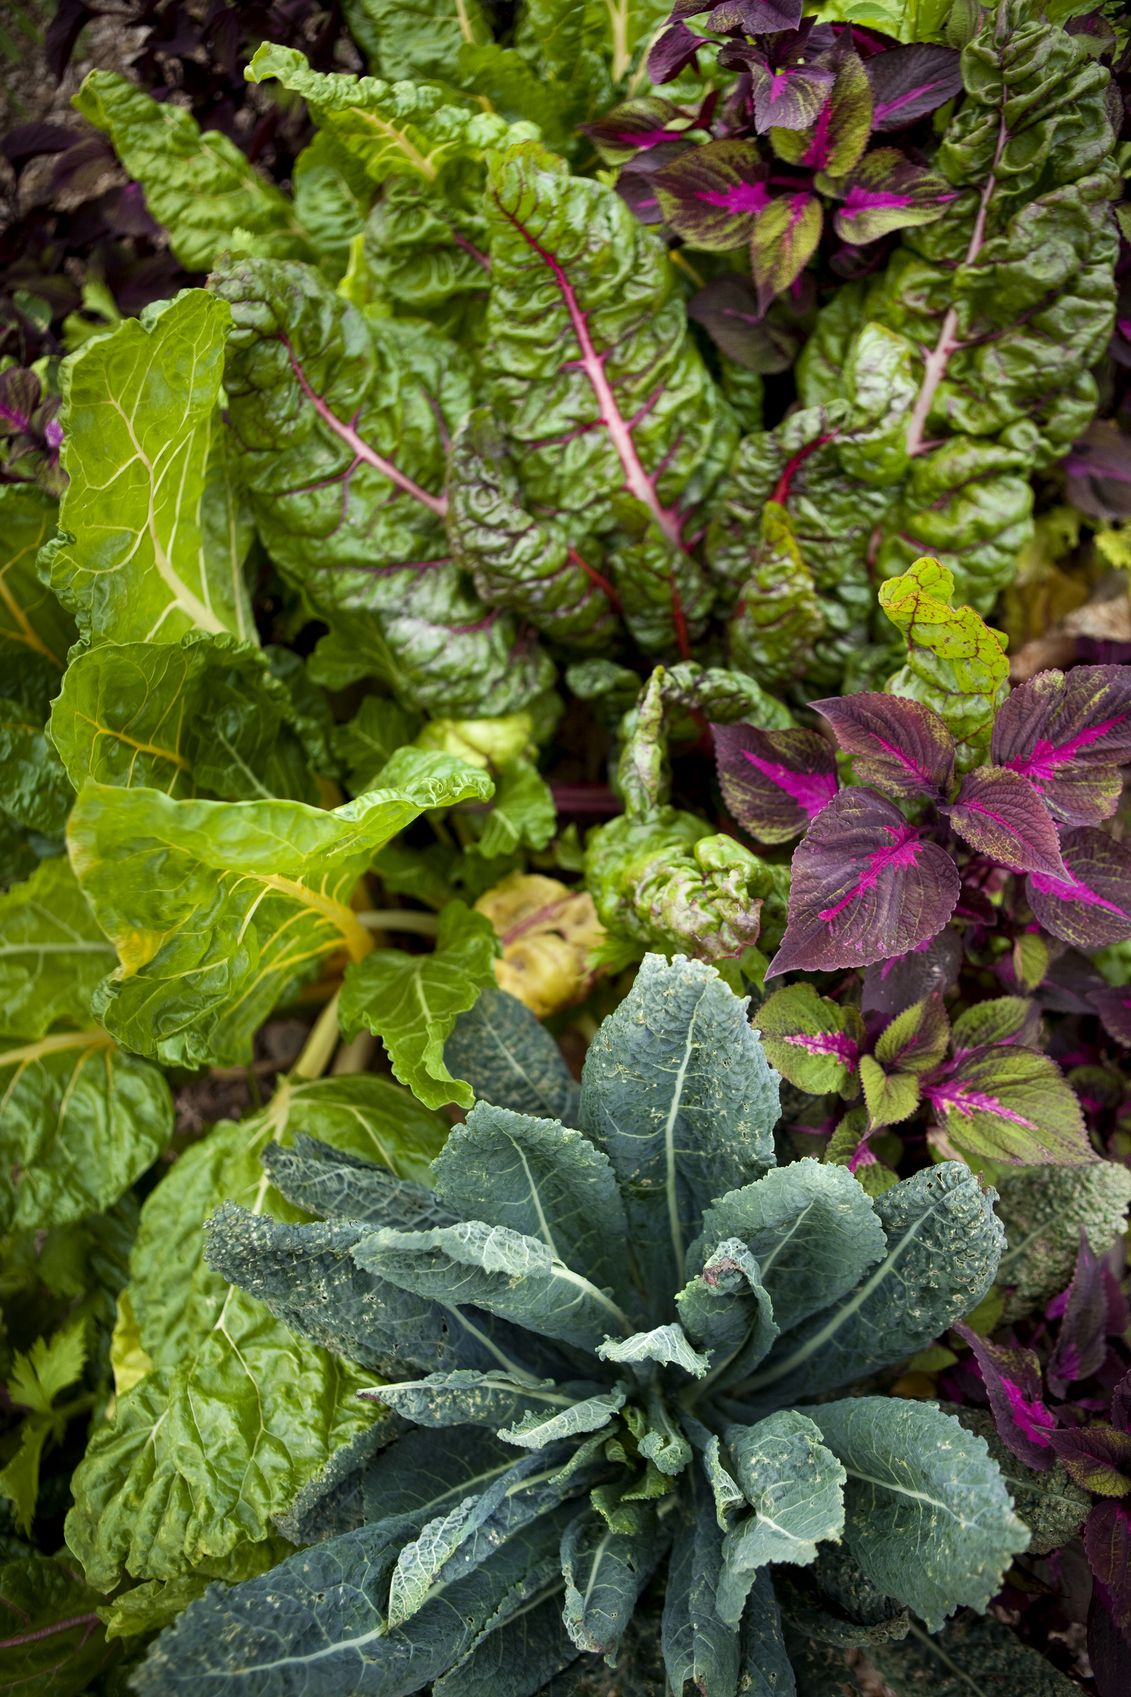 Companion Plants For Chard What Grows Well With Chard 400 x 300